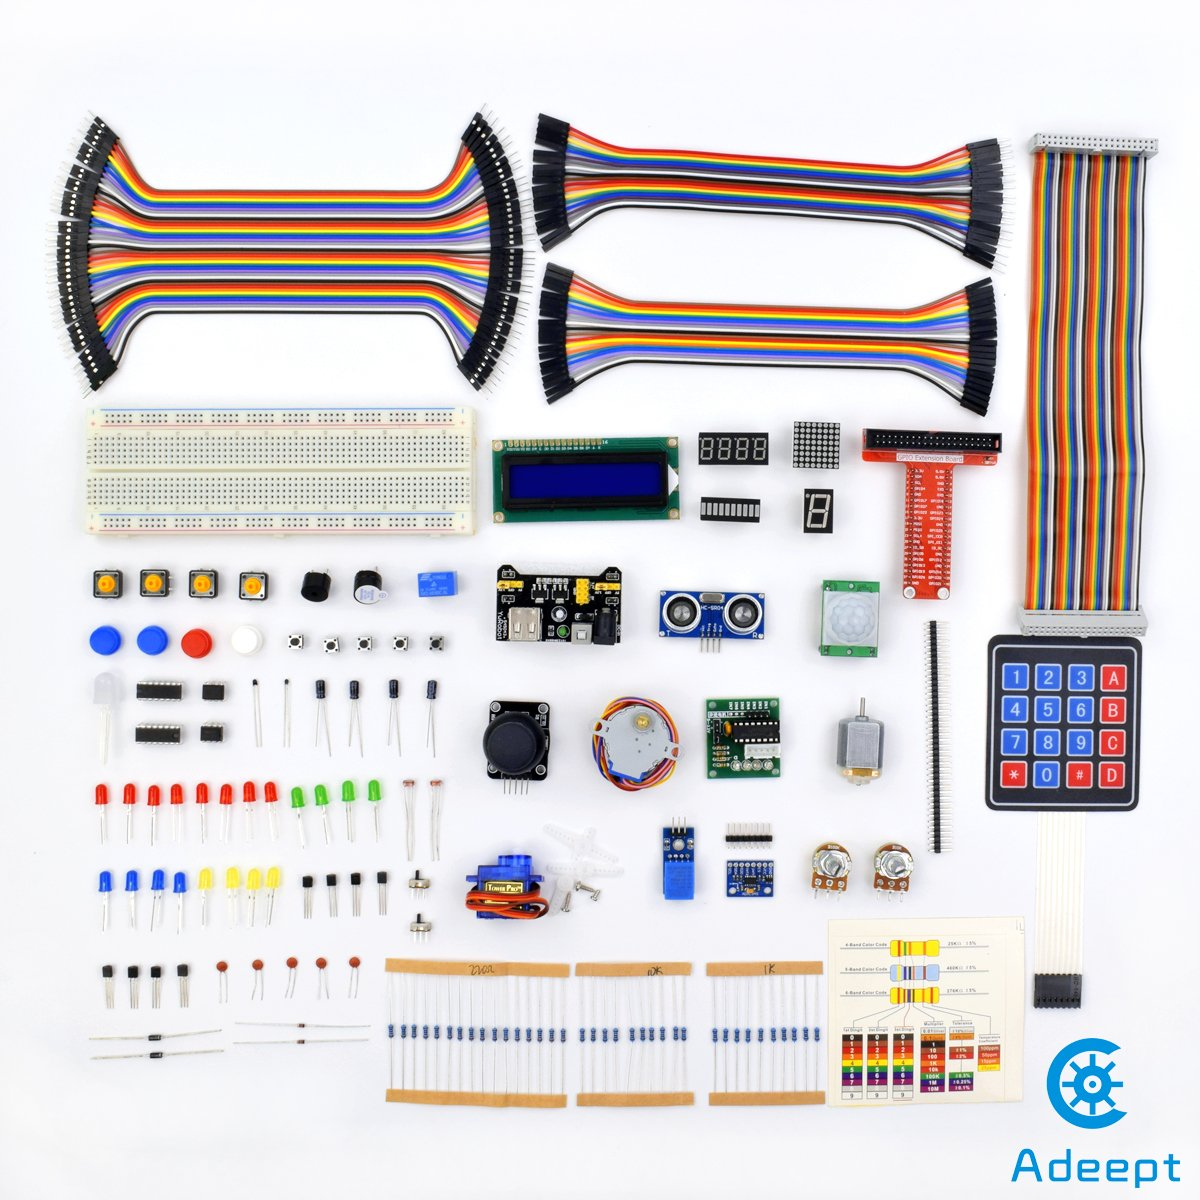 Adeept New Ultimate Starter Learning Kit For Raspberry Pi 3 2 Model B Python Adxl345 Gpio Cable Dc Motor Beginner Wiringpi Pwm Not Working With